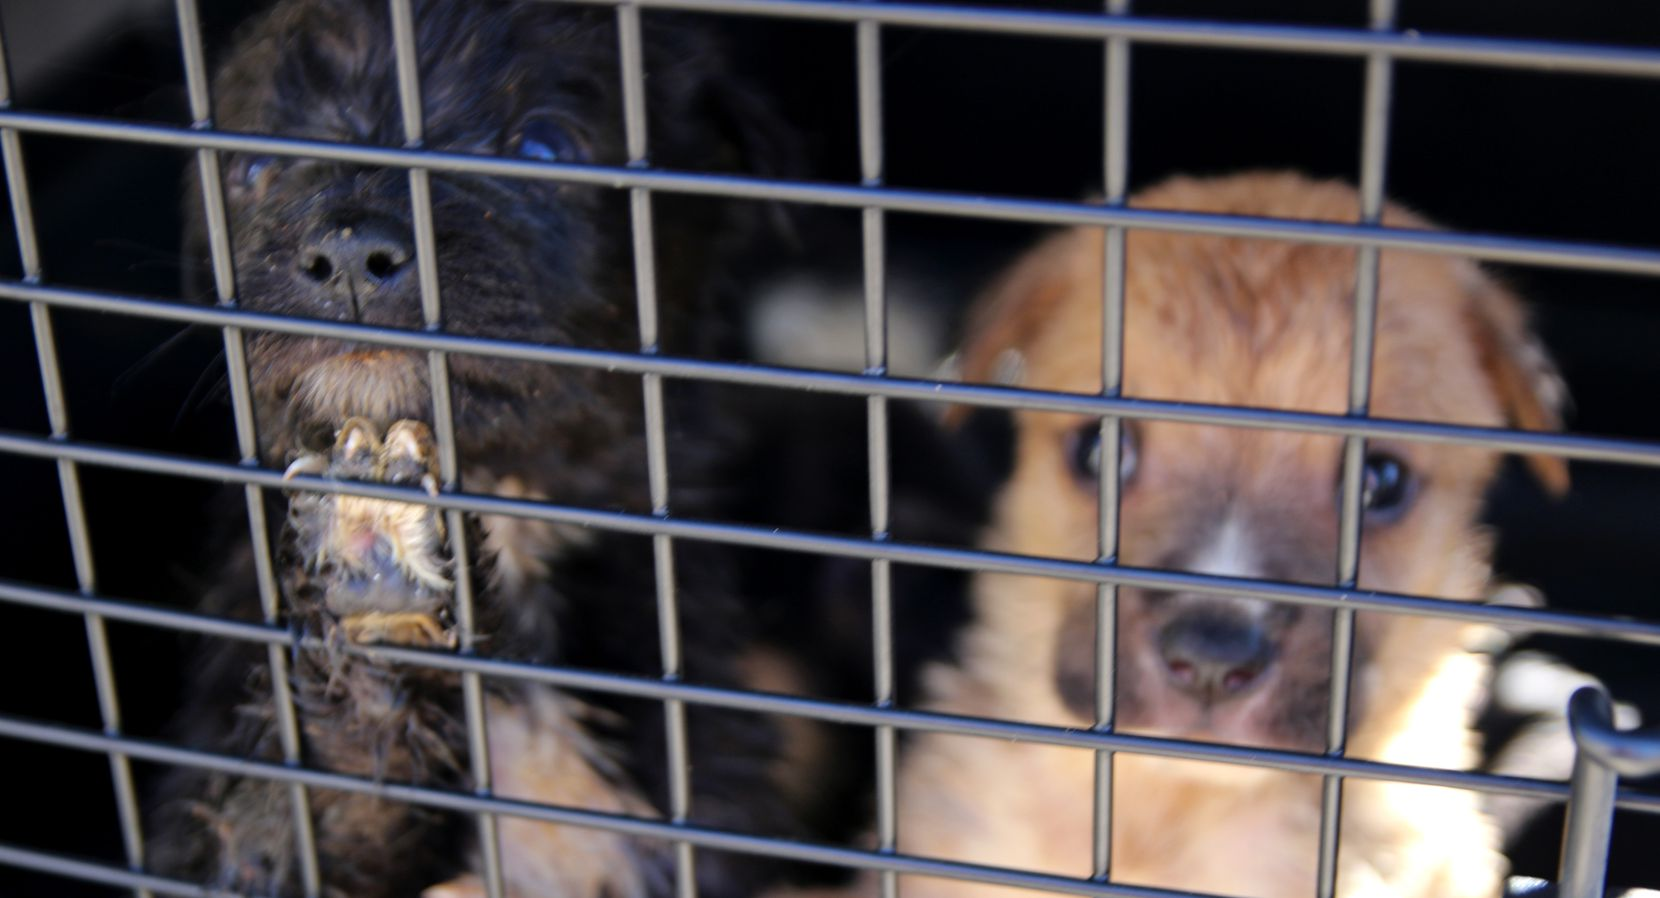 The SPCA of Texas and Van Zandt County Sheriff's Office seized 110 animals including 39 puppies, 35 dogs, 24 cats, 11 kittens and one horse Oct. 26 from a property near Canton after officials obtained warrants.